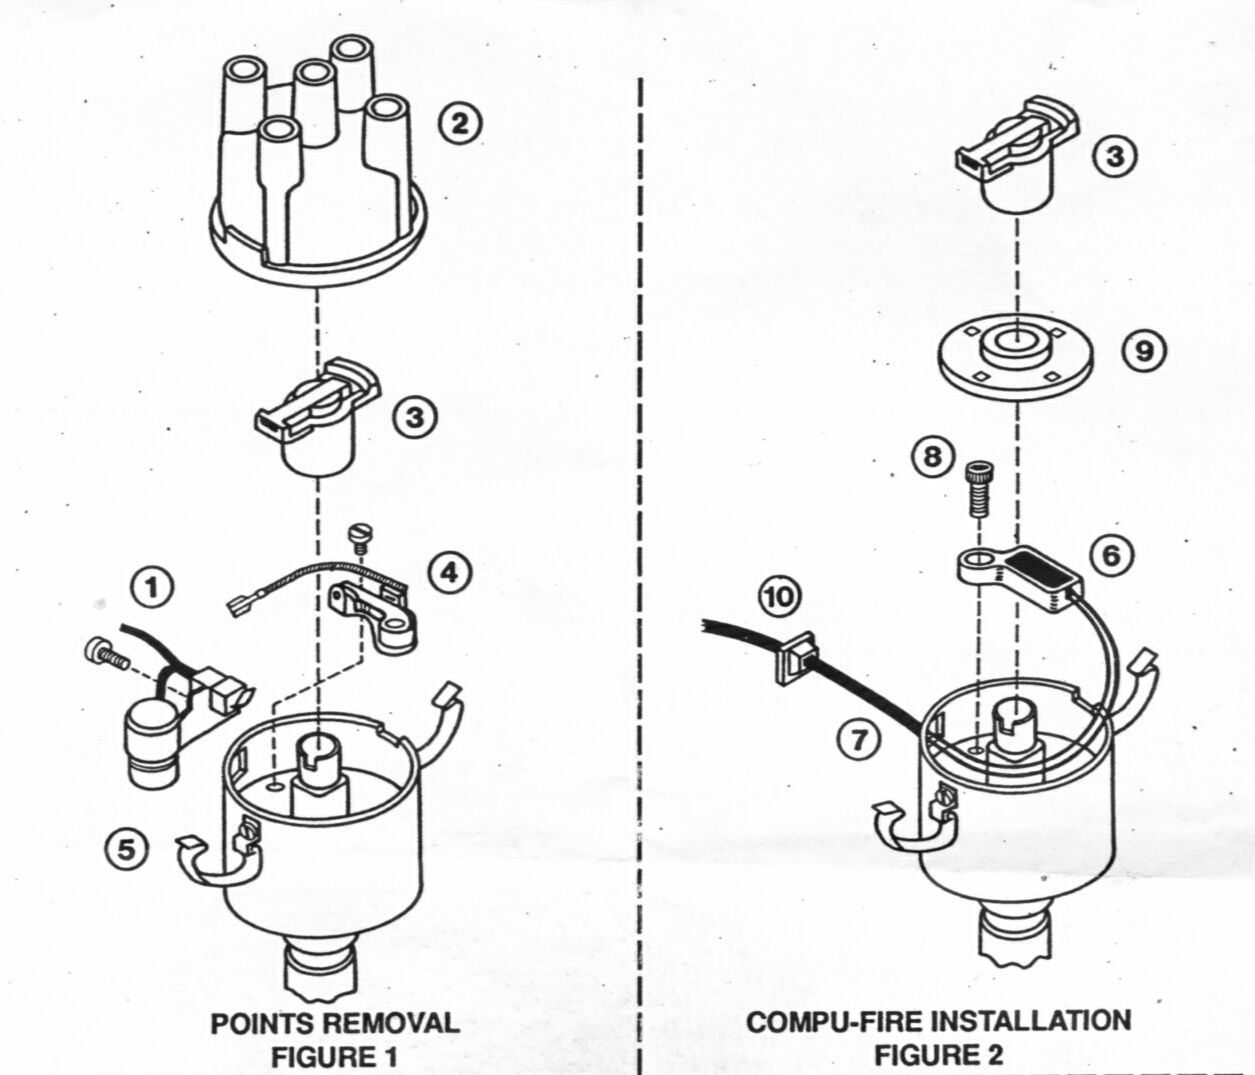 compufire electronic ignition VW Beetle Heater Diagram